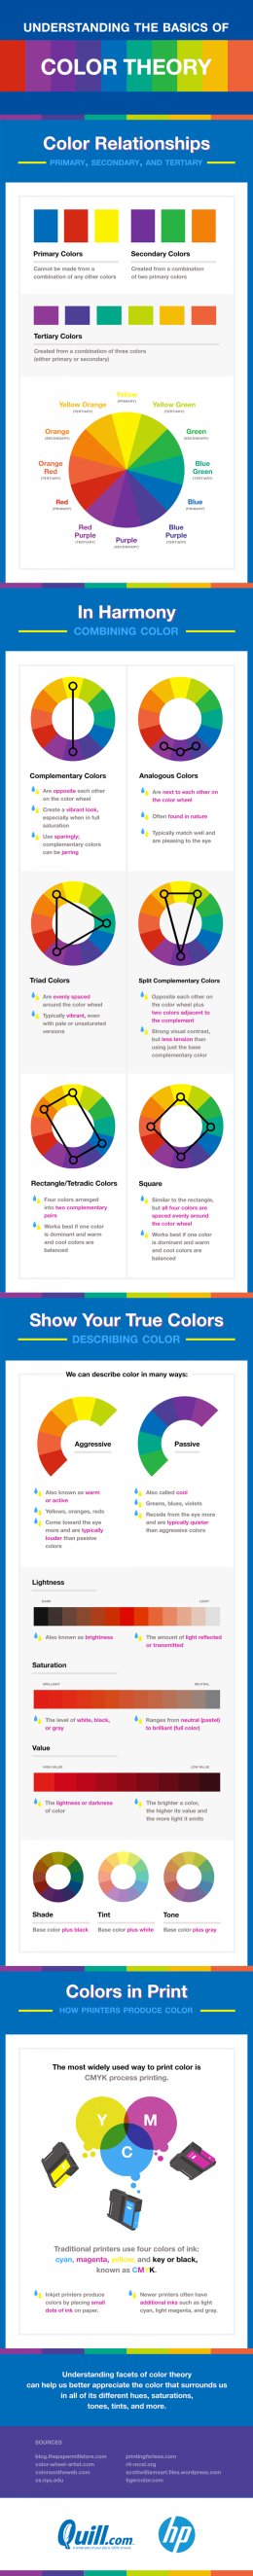 infographic-color-theory